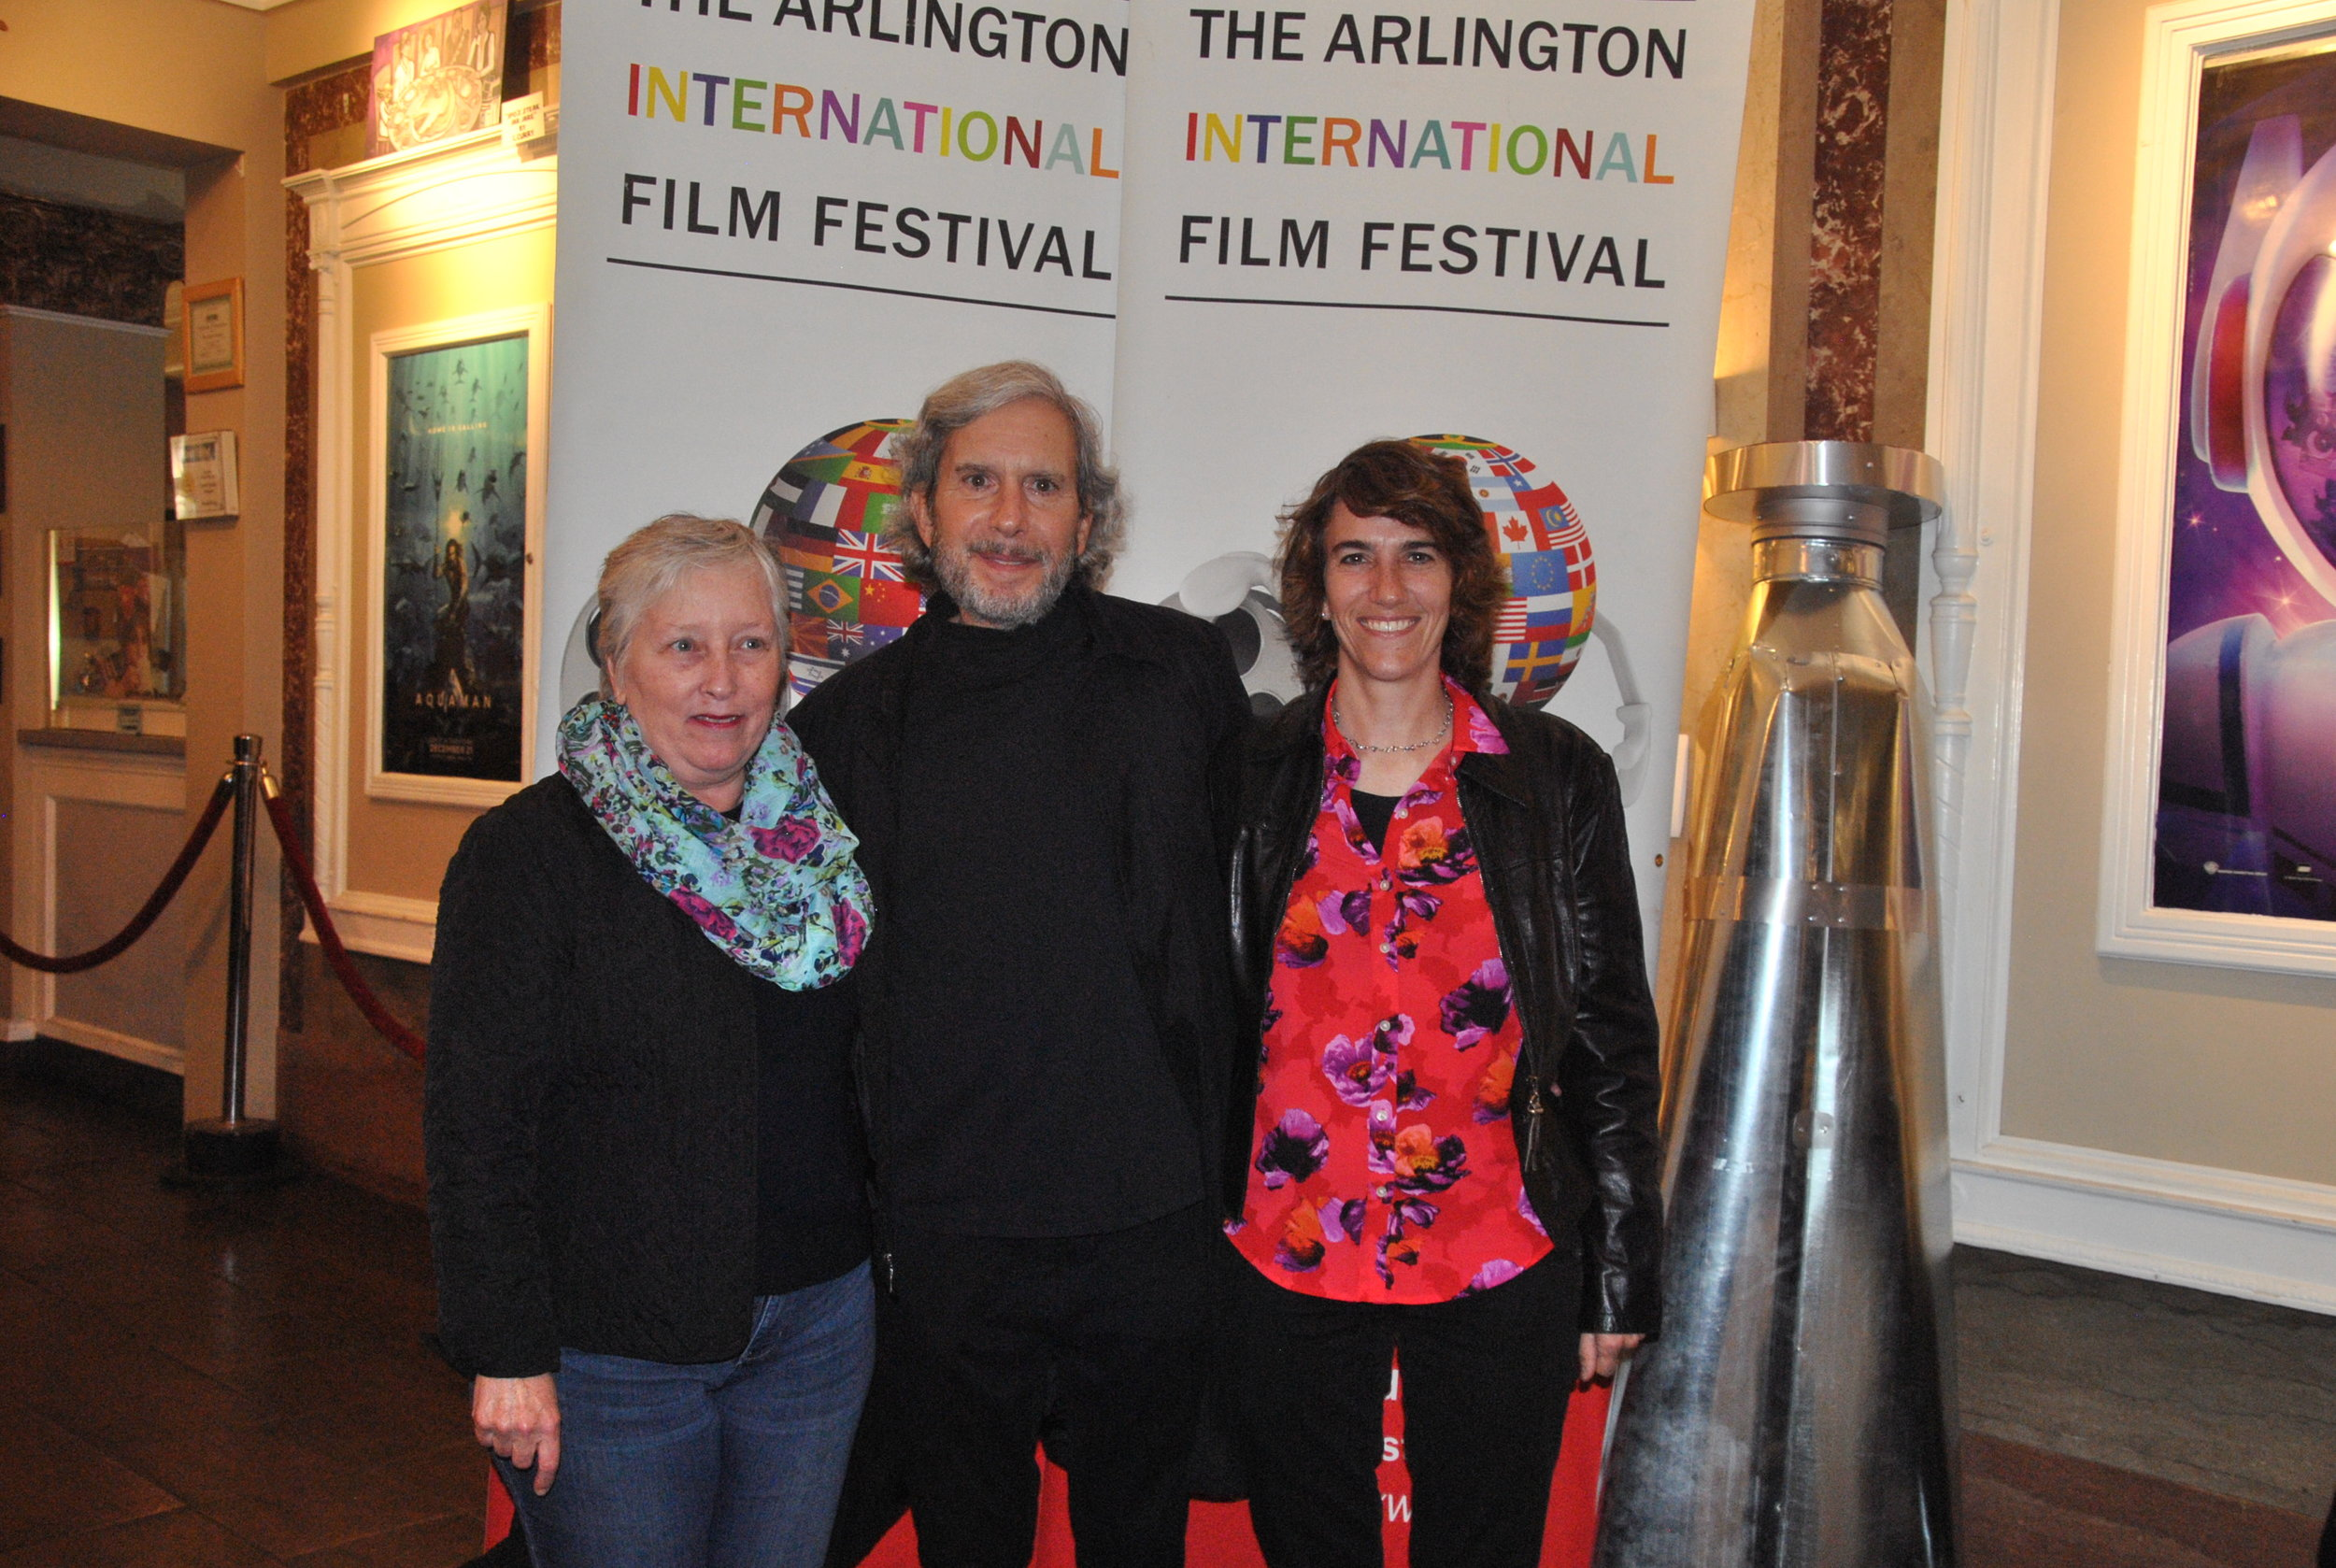 April Ranck, Executive Director of AIFF, David Sutherland, filmmaker and Sally Rubin, filmmaker